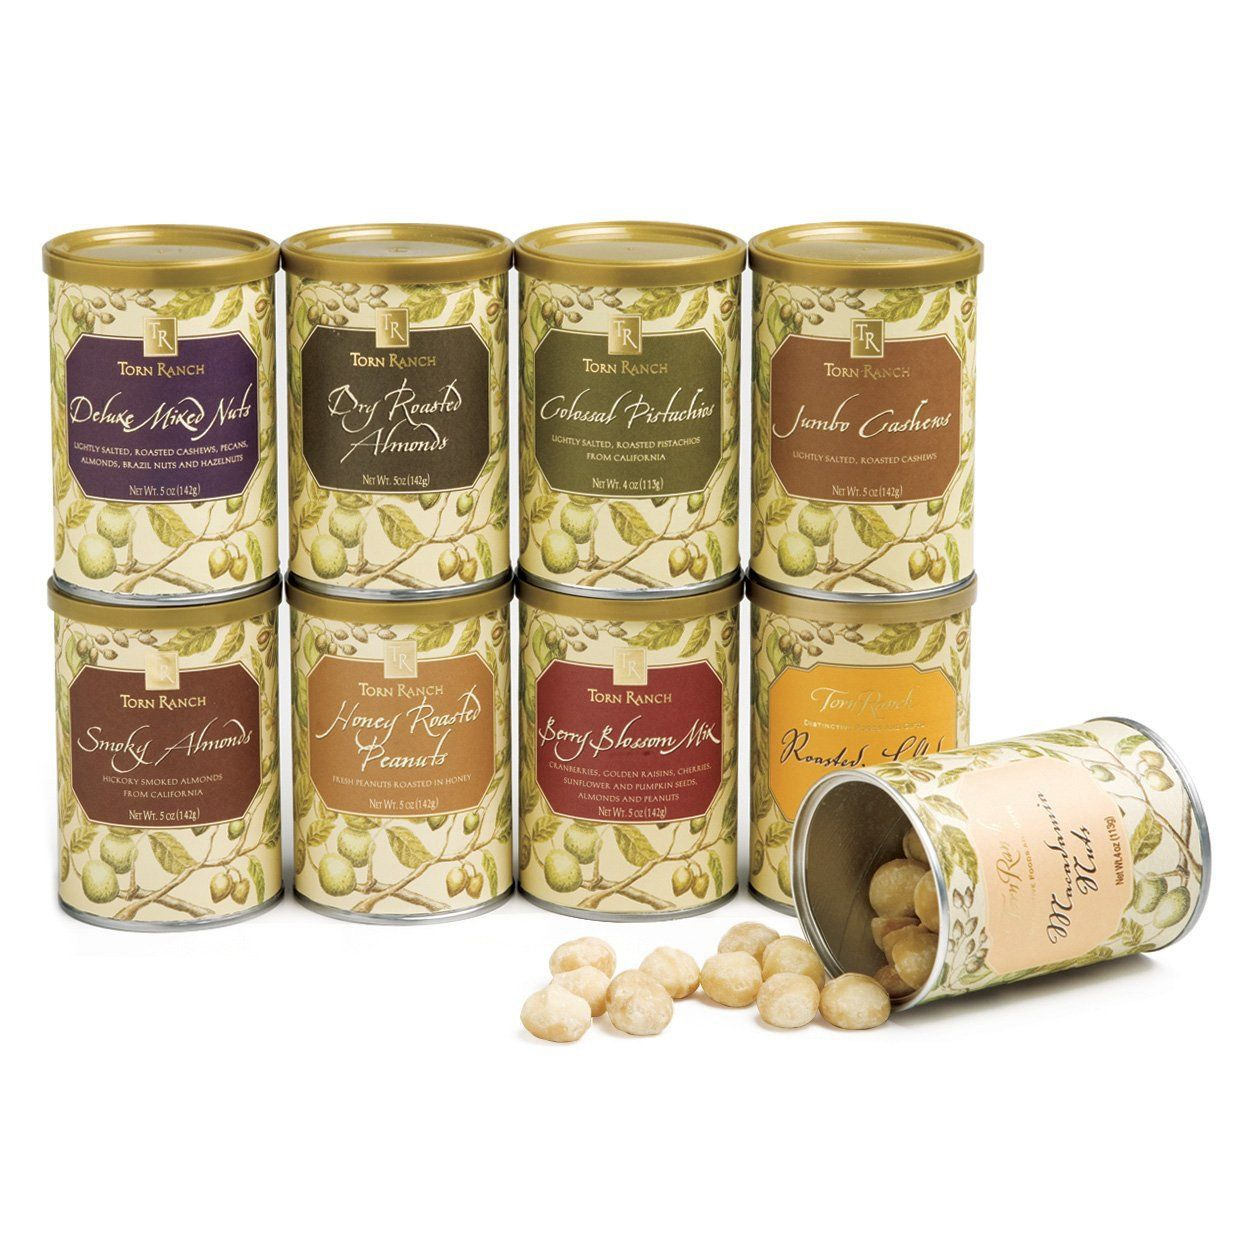 Classic Nut Tins filled with freshly roasted nuts including Smoky Almonds, Berry Blossom Trail Mix, Jumbo Cashews, Deluxe Mixed Nuts, Hawaiian Macadamia Nuts, and California Colossal Pistachios